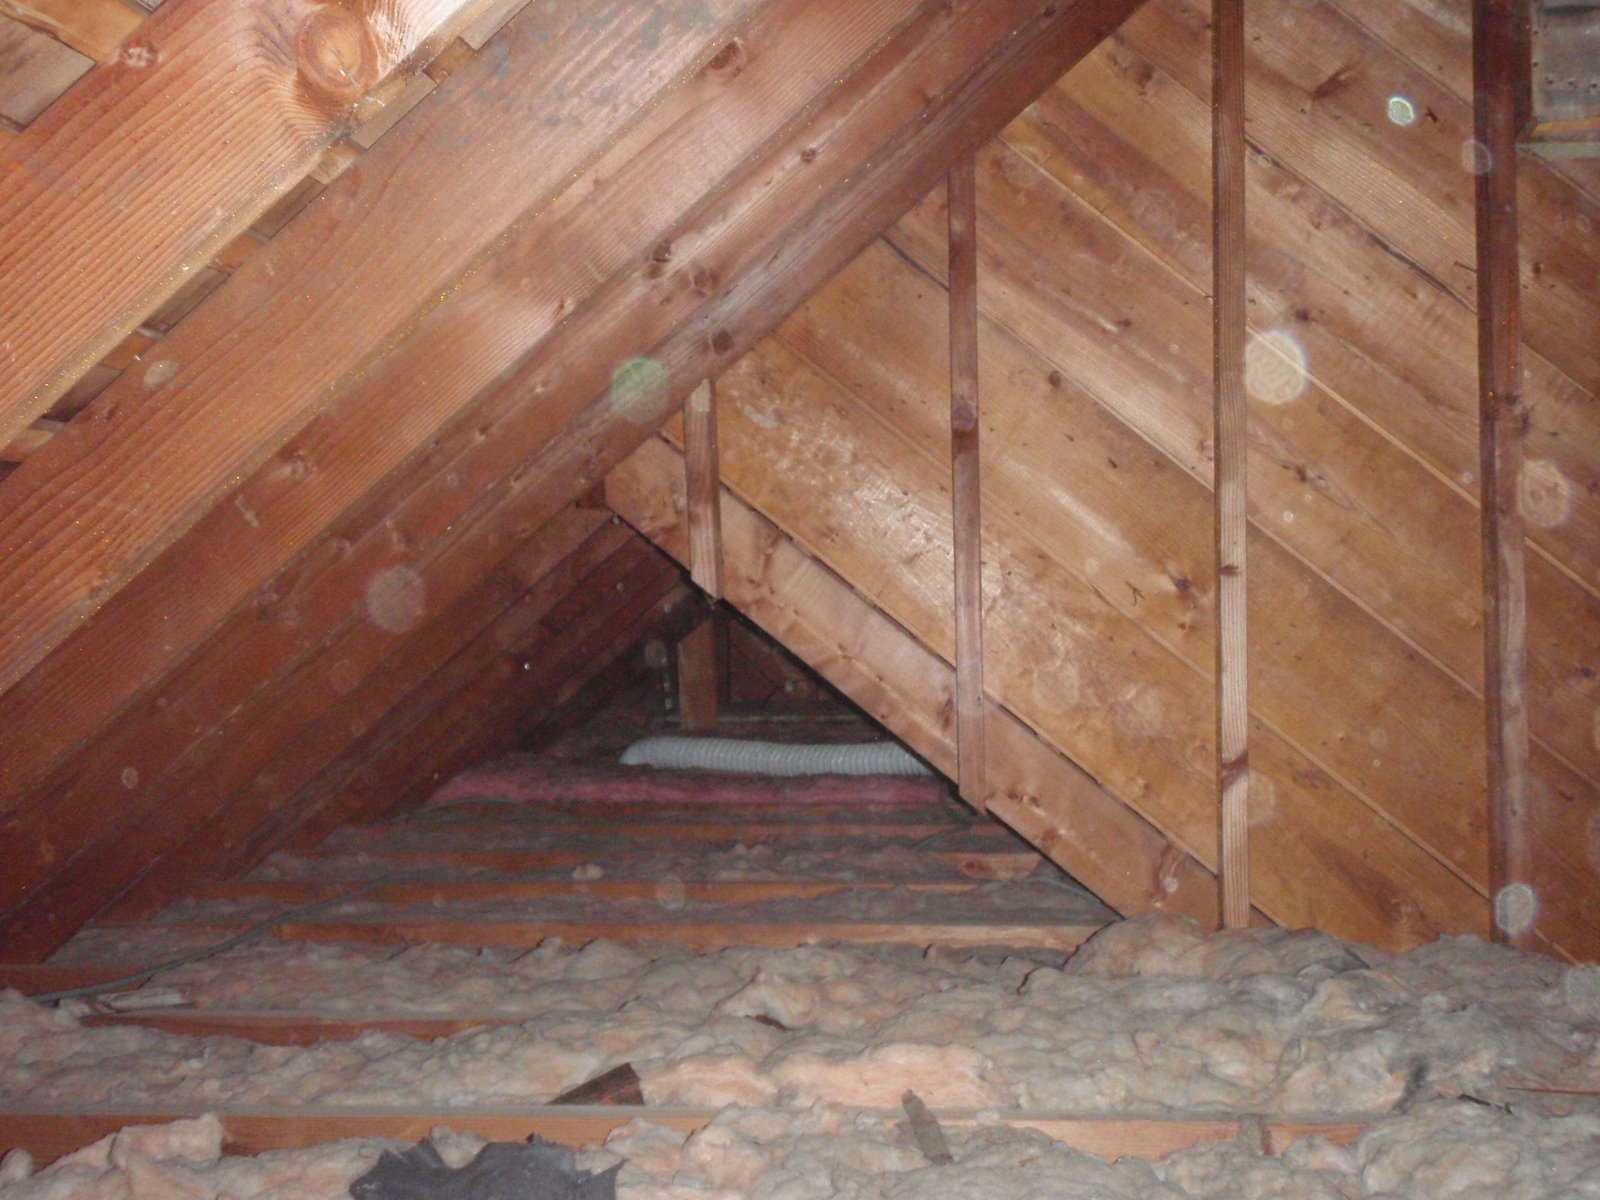 55 Attic Flooring Plywood Attic Floor Plywood Question Page 2 throughout proportions 1600 X 1200